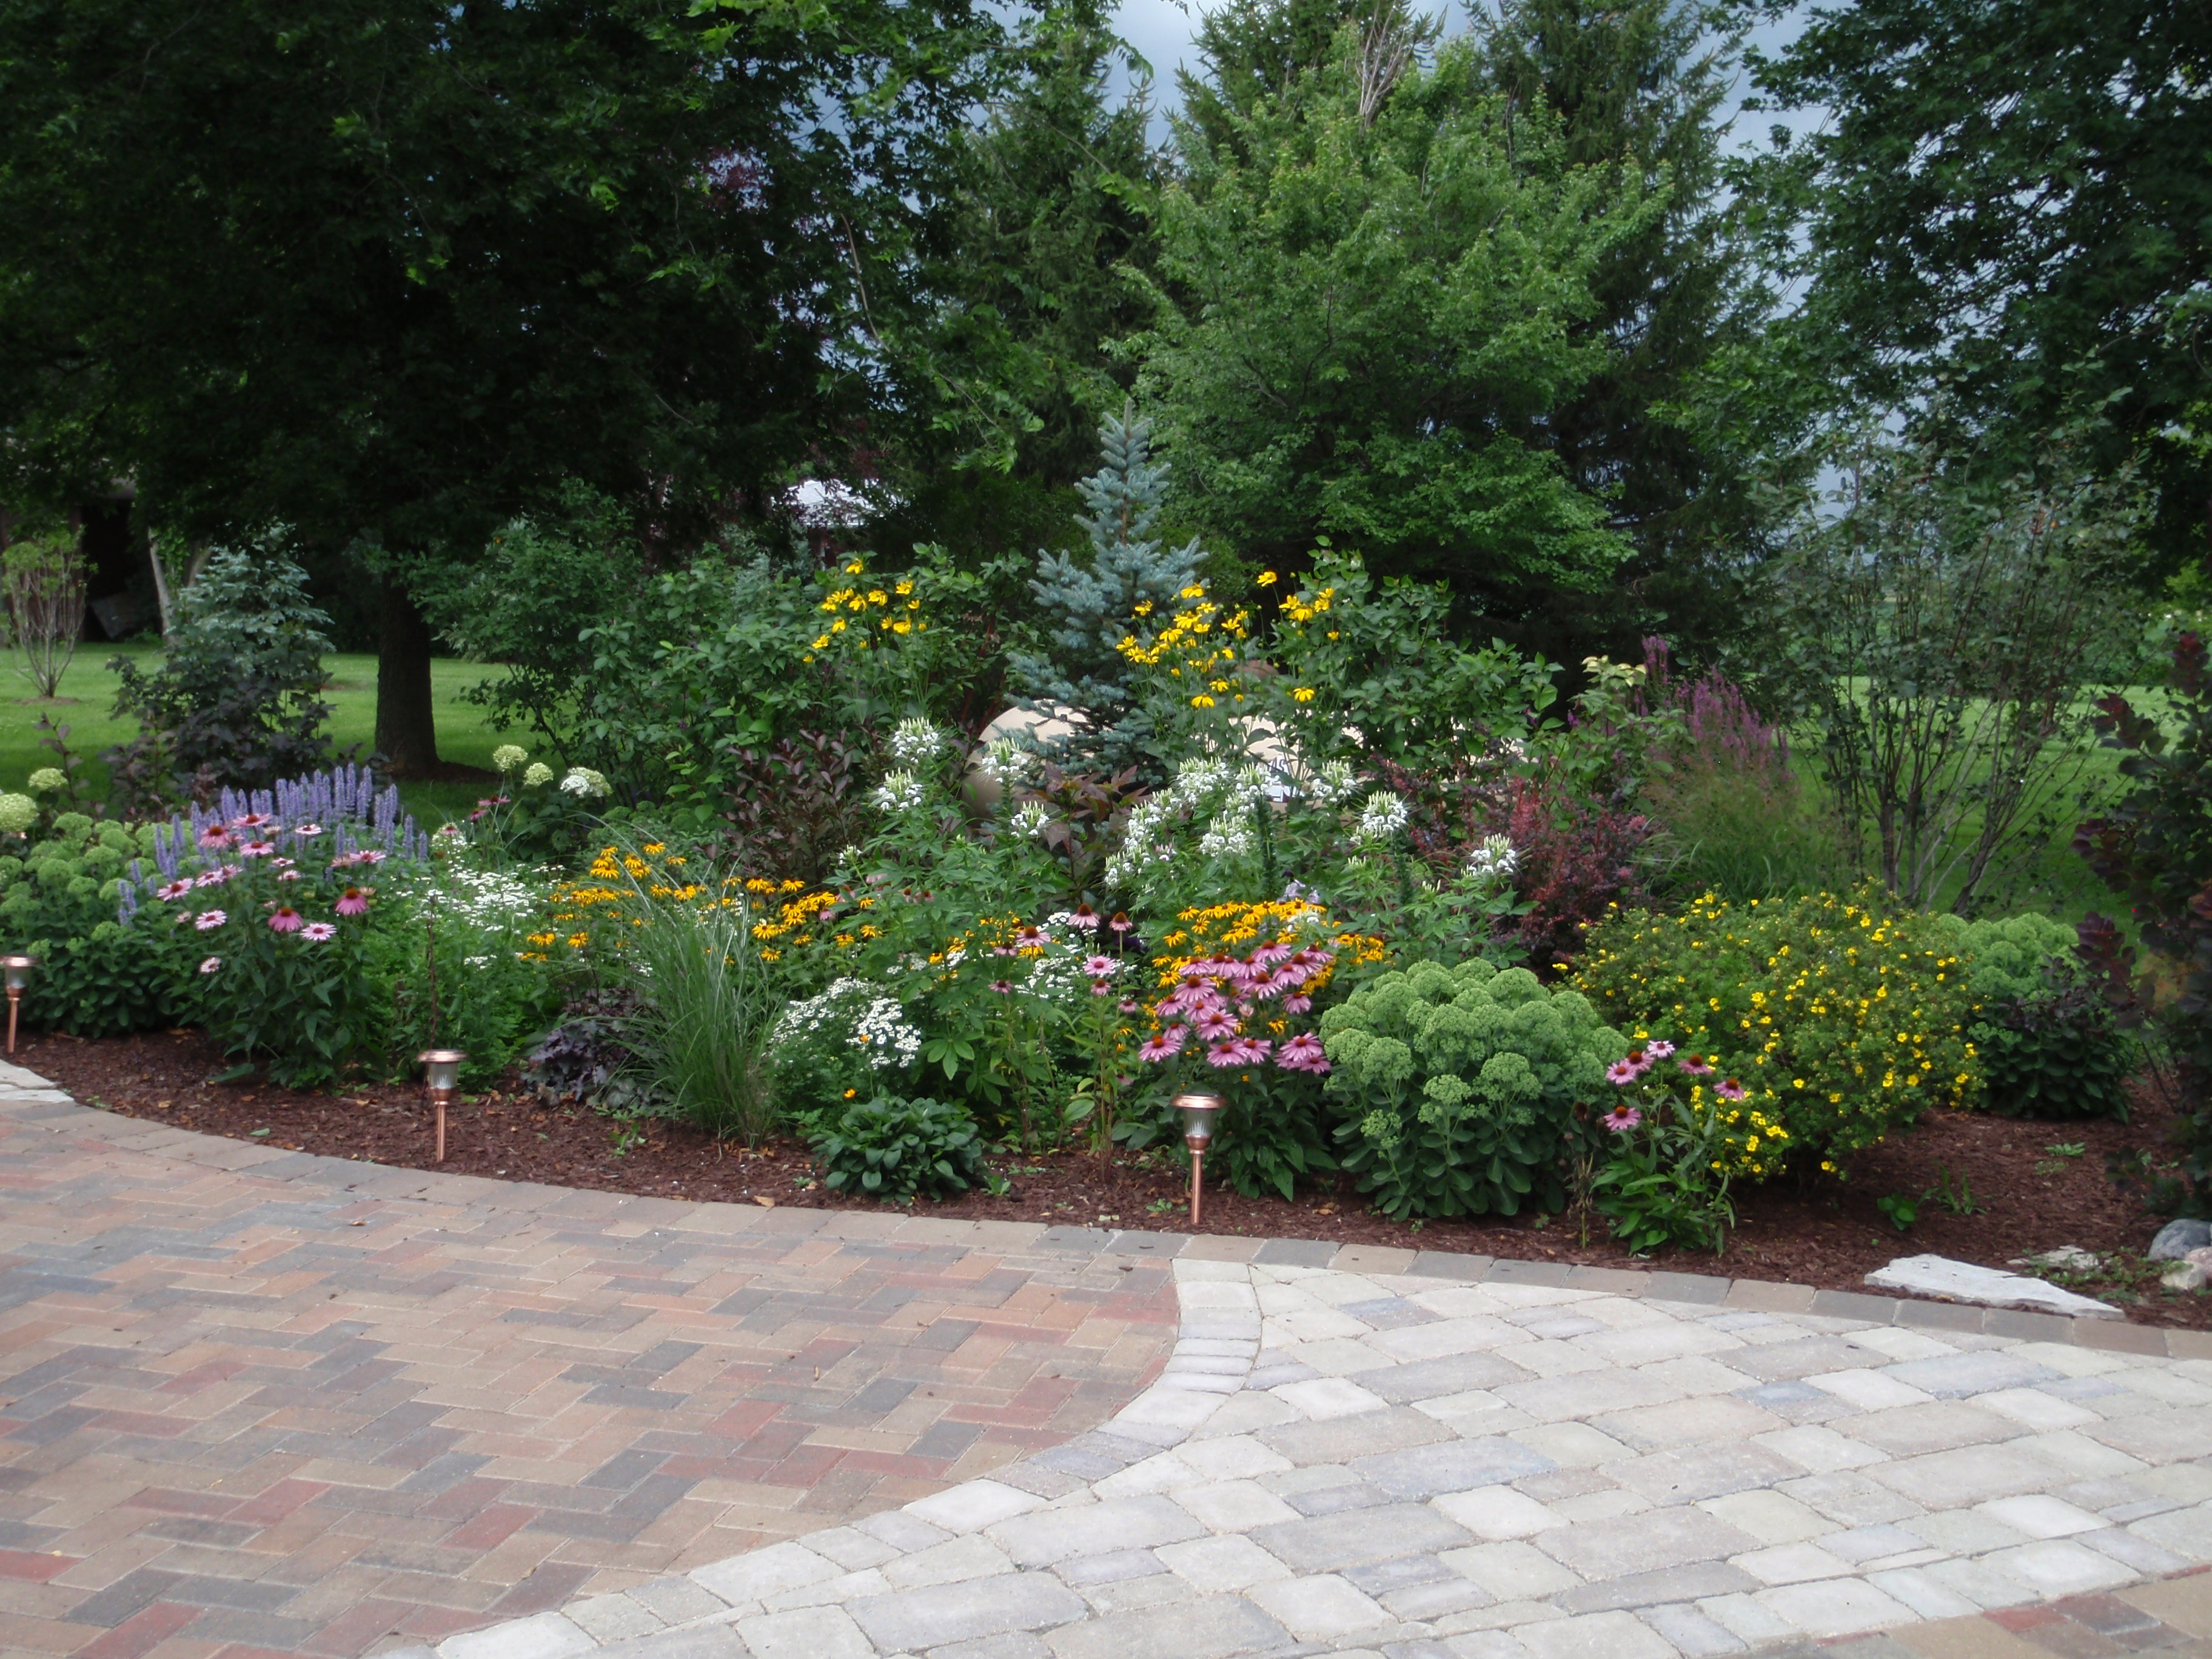 S n g design inc landscape design installation contractor for Garden designs images pictures